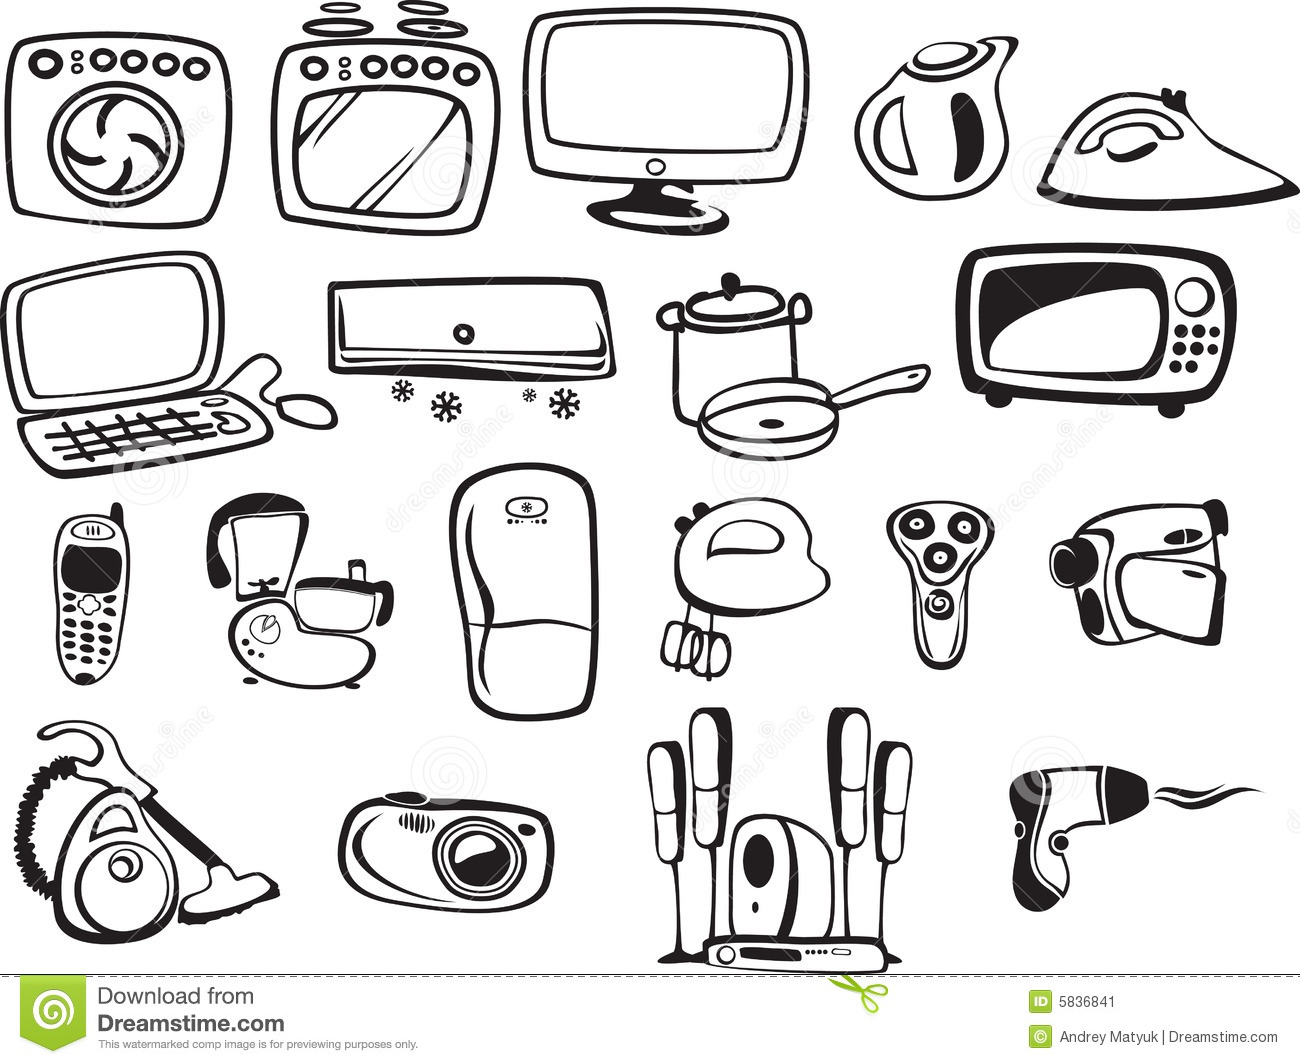 Symbols Of Household Appliances And Electronic Stock Image - Image ...